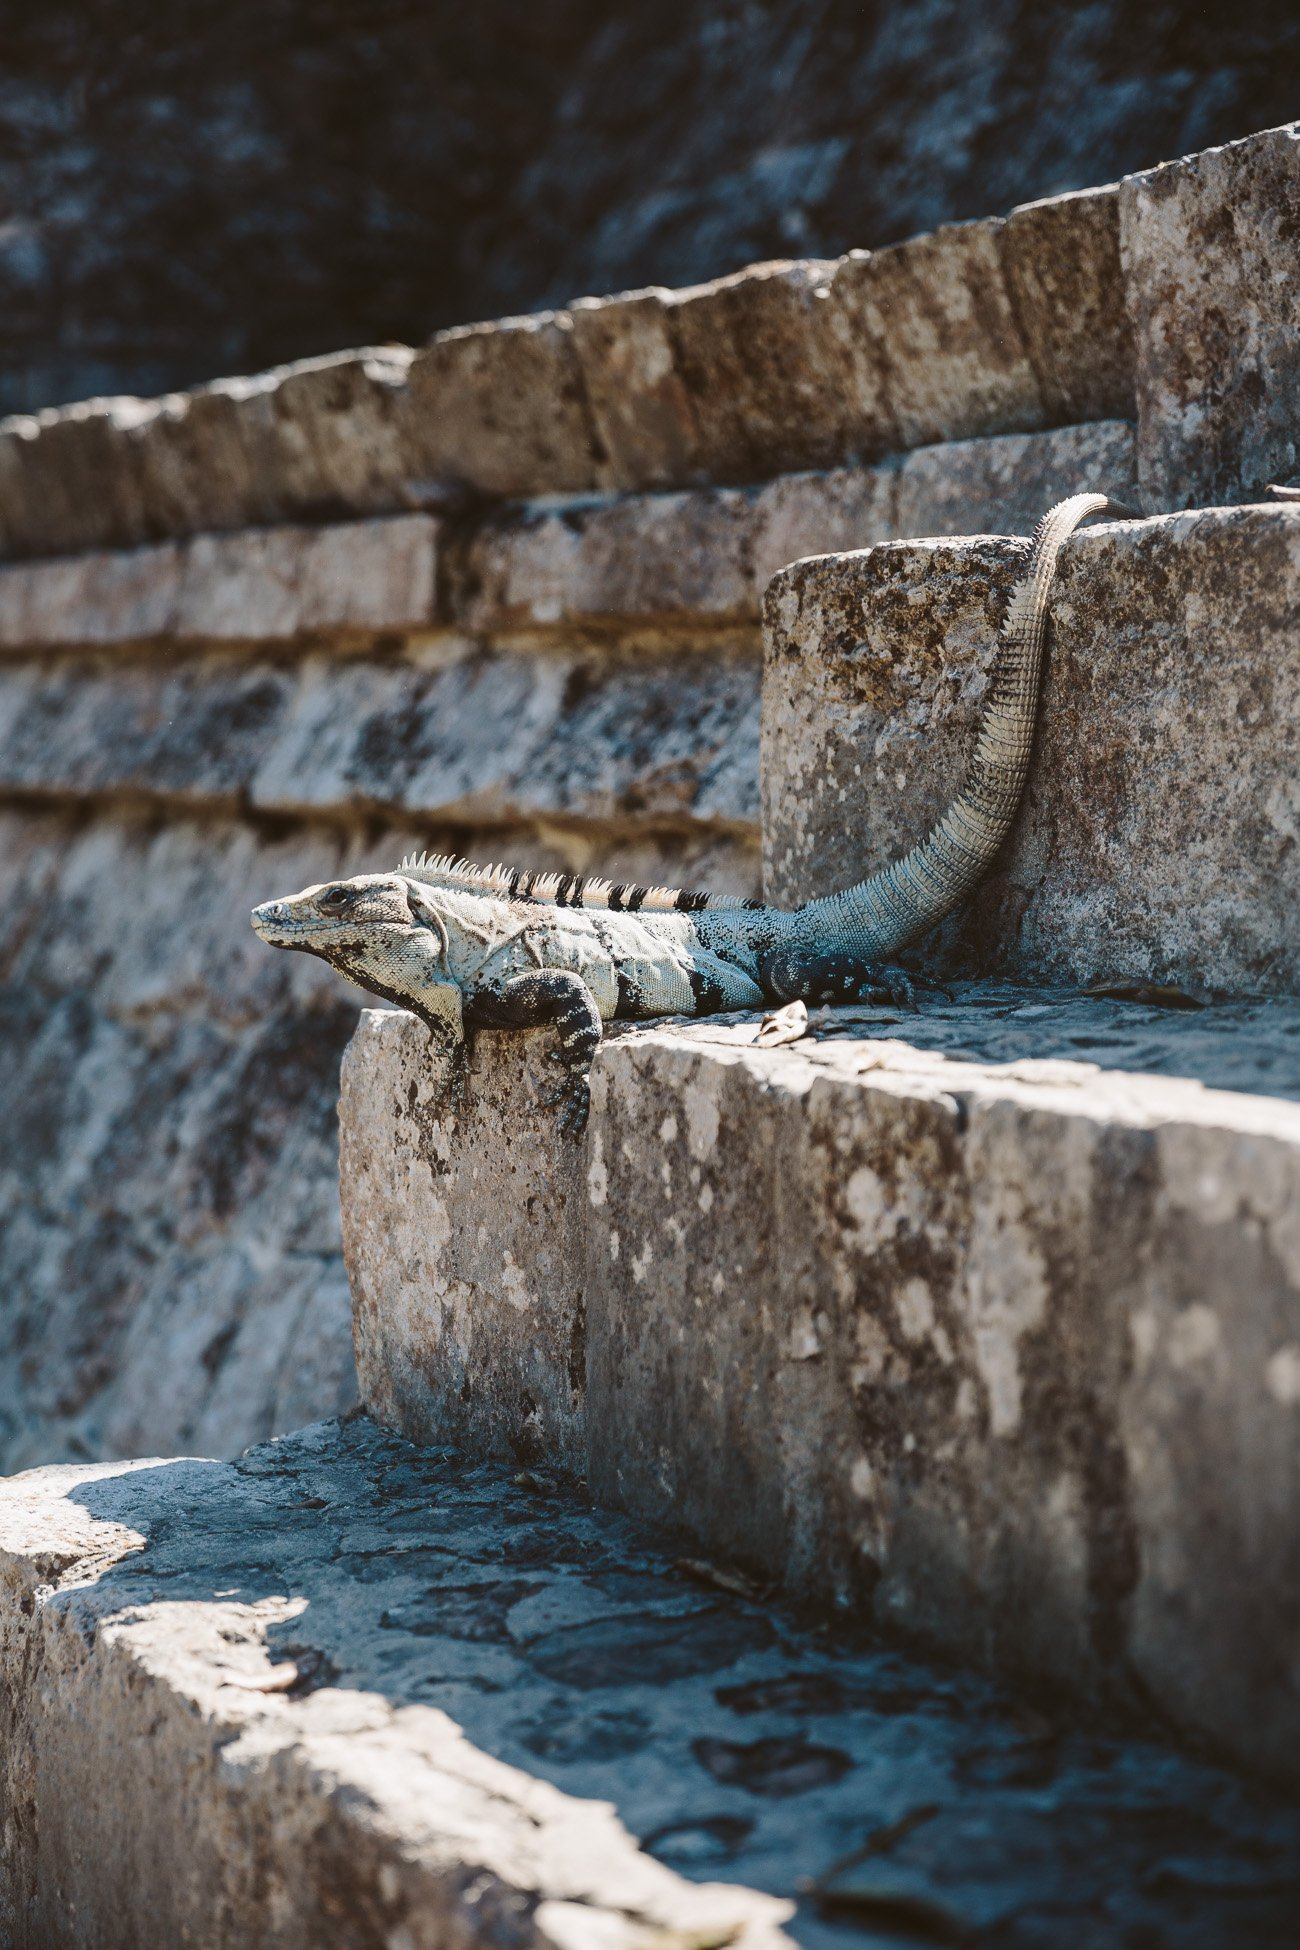 Uxmal animal encounter